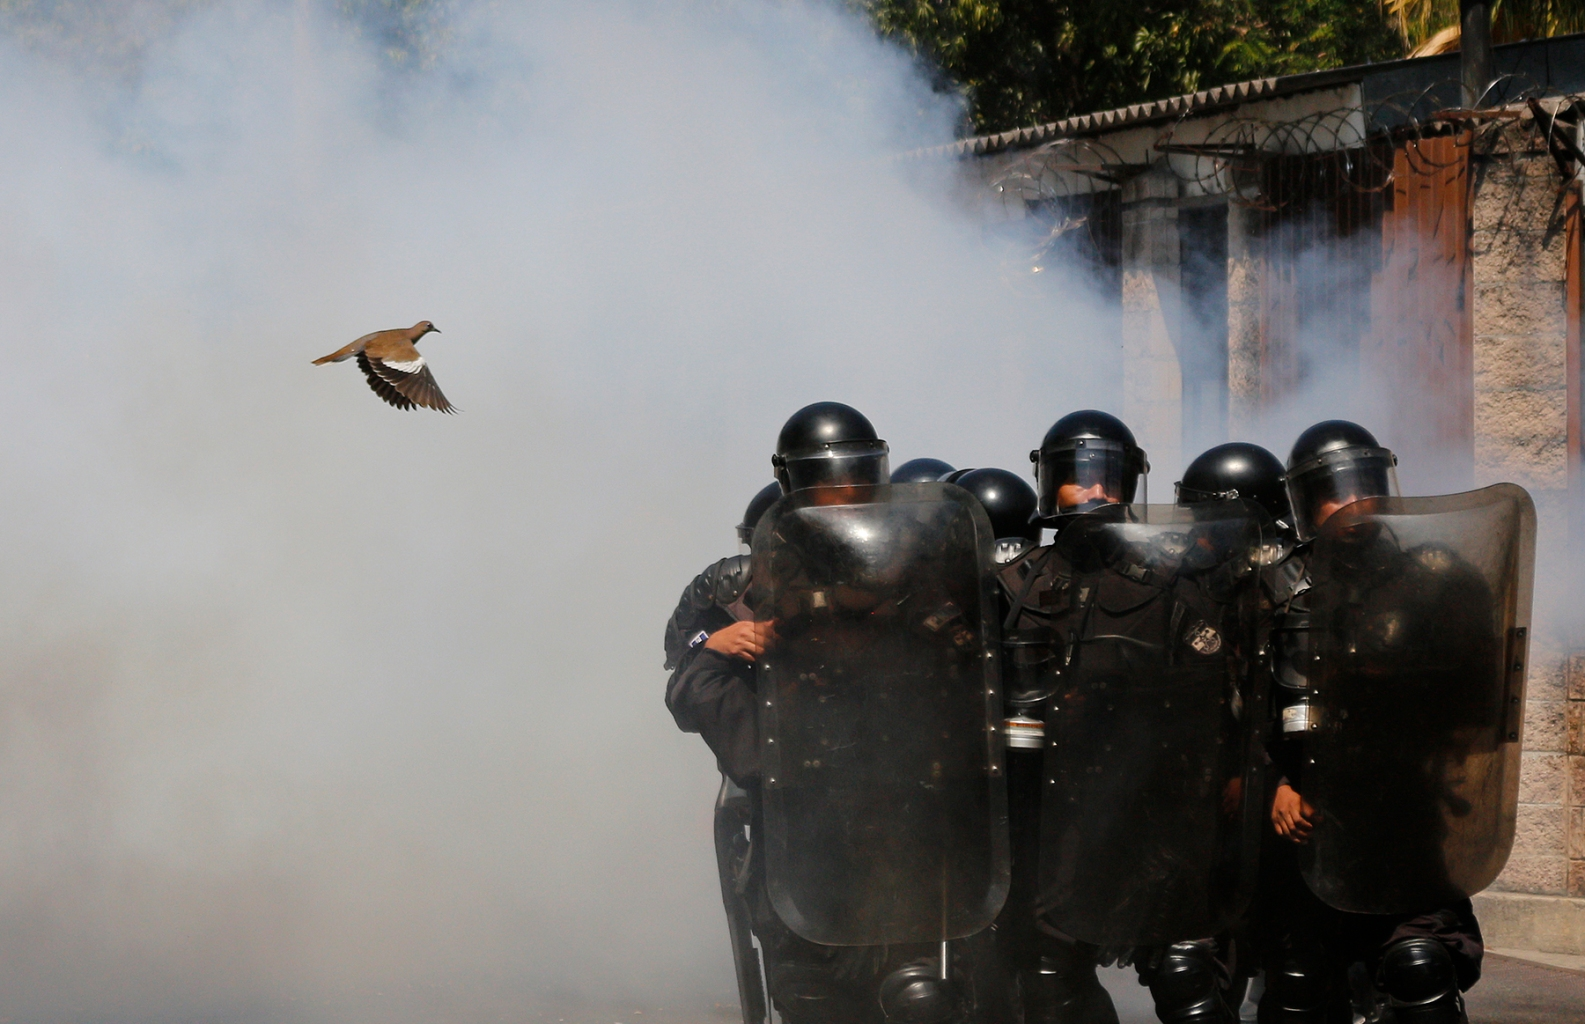 A bird flies near riot police during a protest against the intention of the El Salvador National Congress to put the water service in the hands of the private sector in San Salvador on March 20. Alex Peña/Getty Images